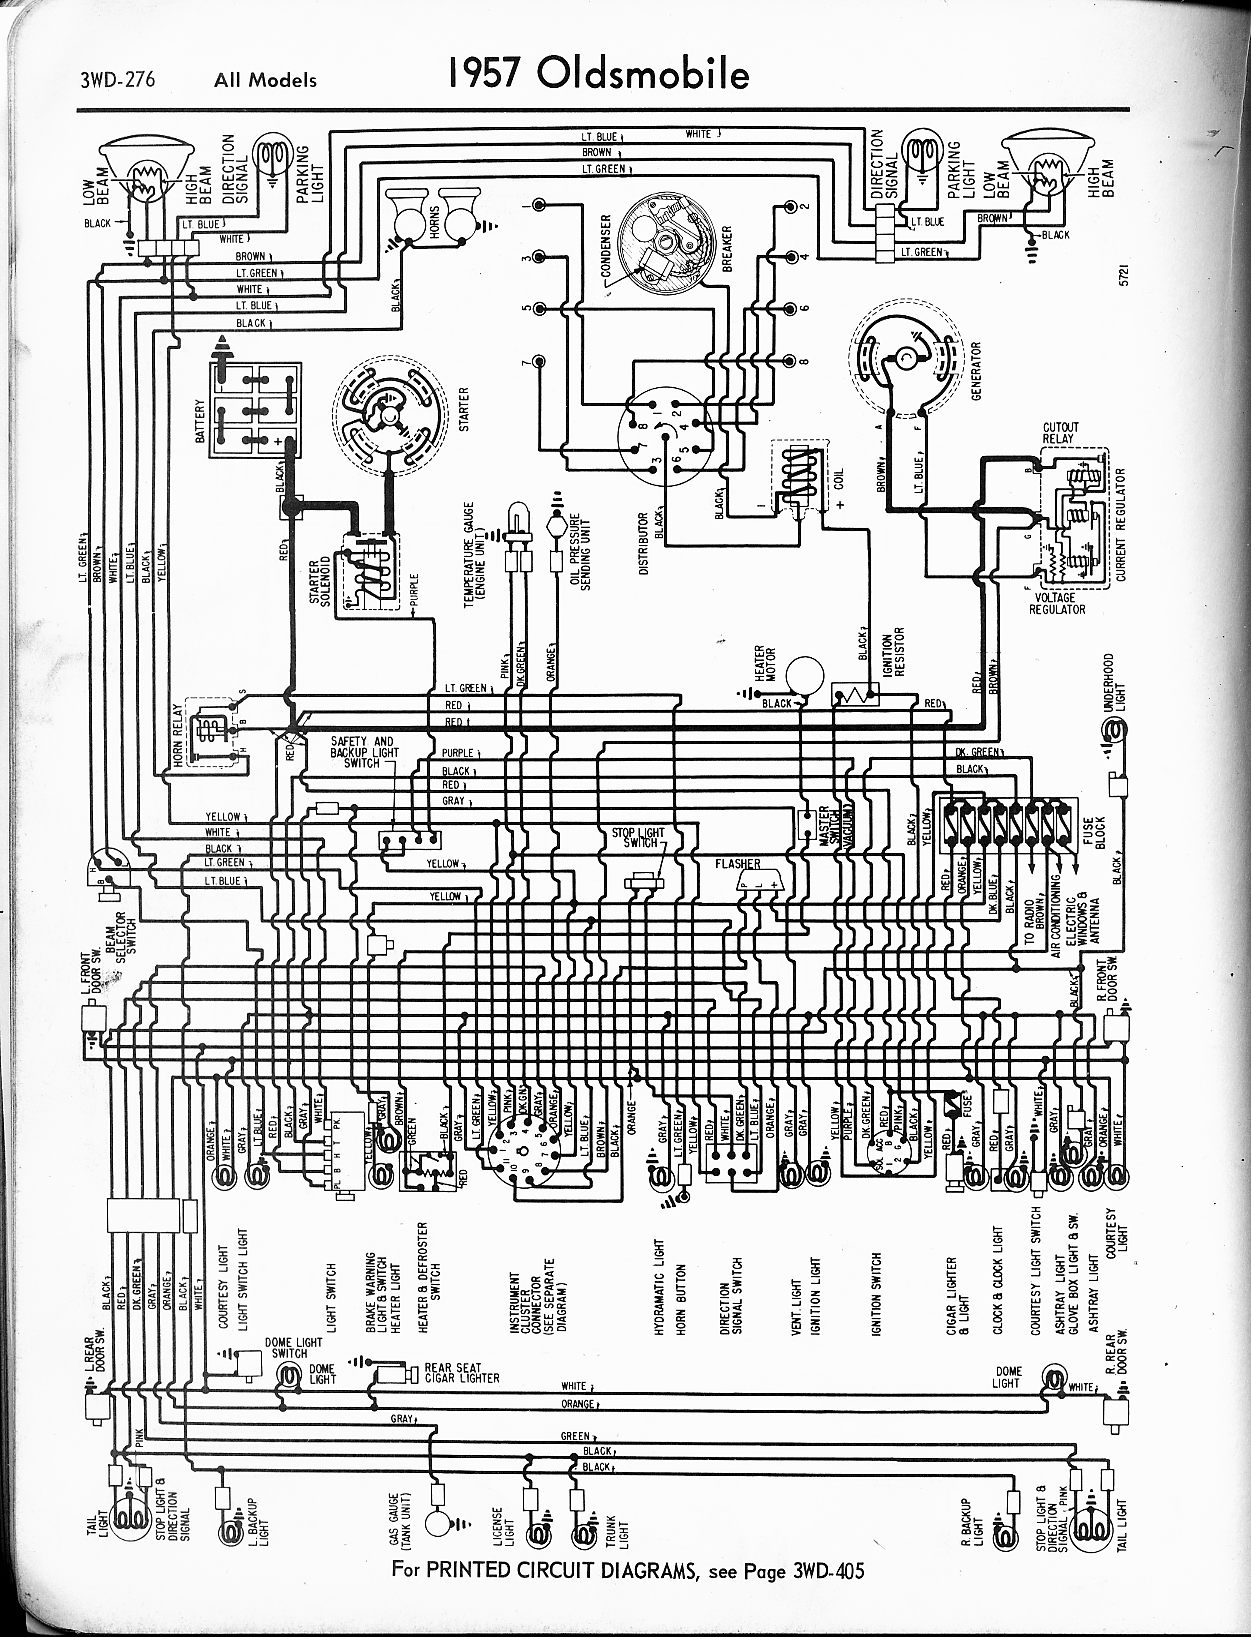 oldsmobile wiring diagrams - the old car manual project 82 oldsmobile 98 regency wiring diagram 82 camaro engine bay wiring diagram schematic #7